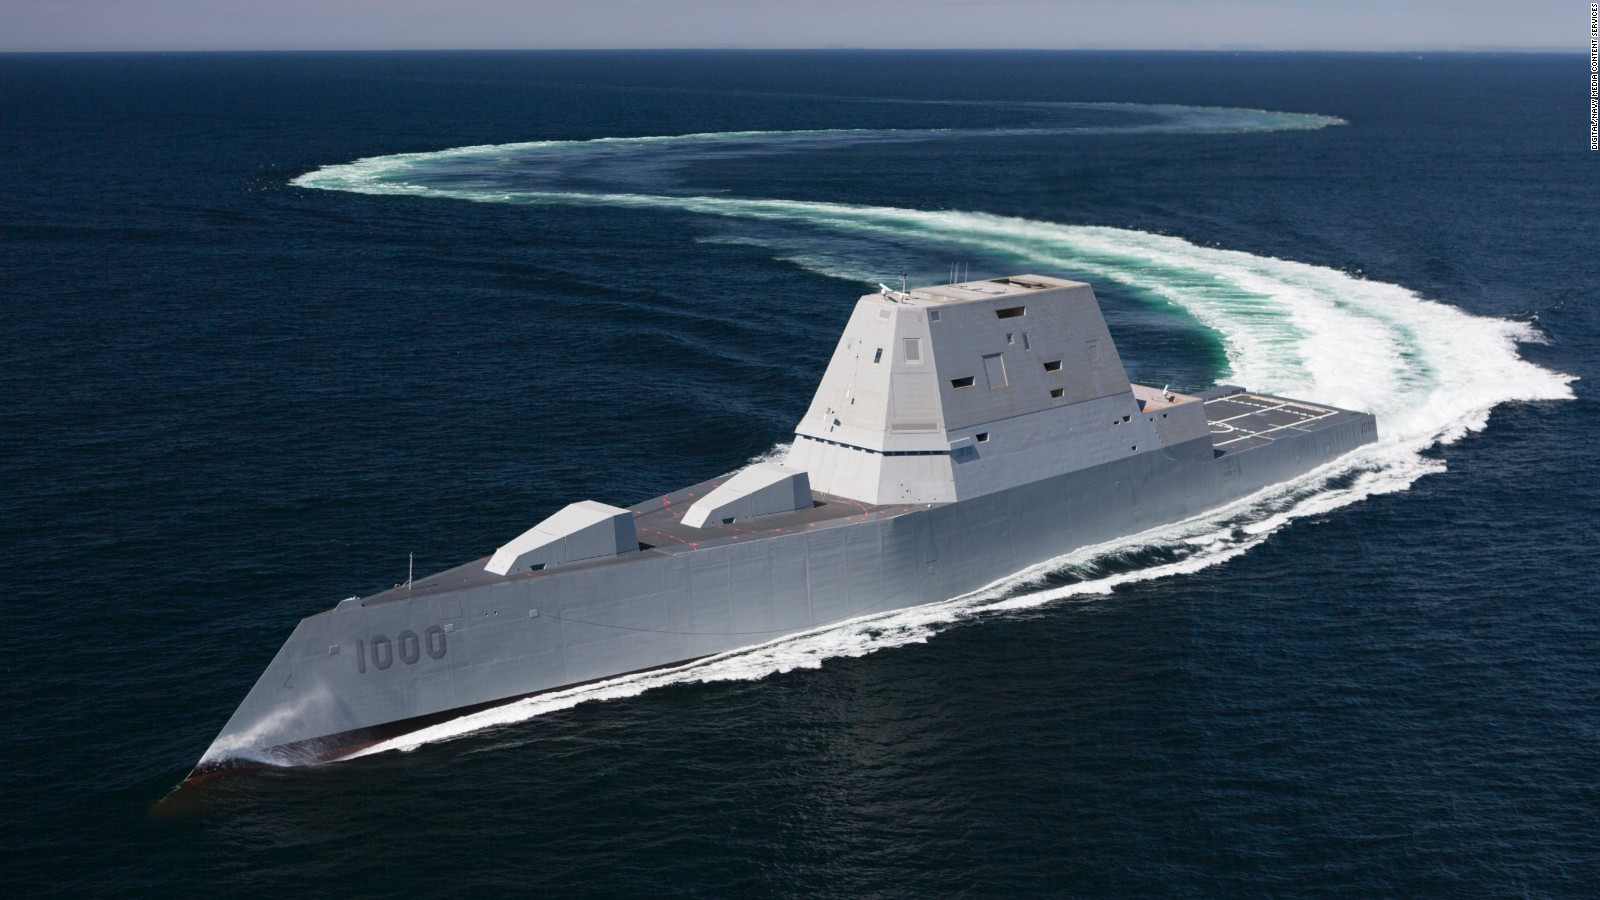 Watch the US Navy's laser weapon in action - CNN Video